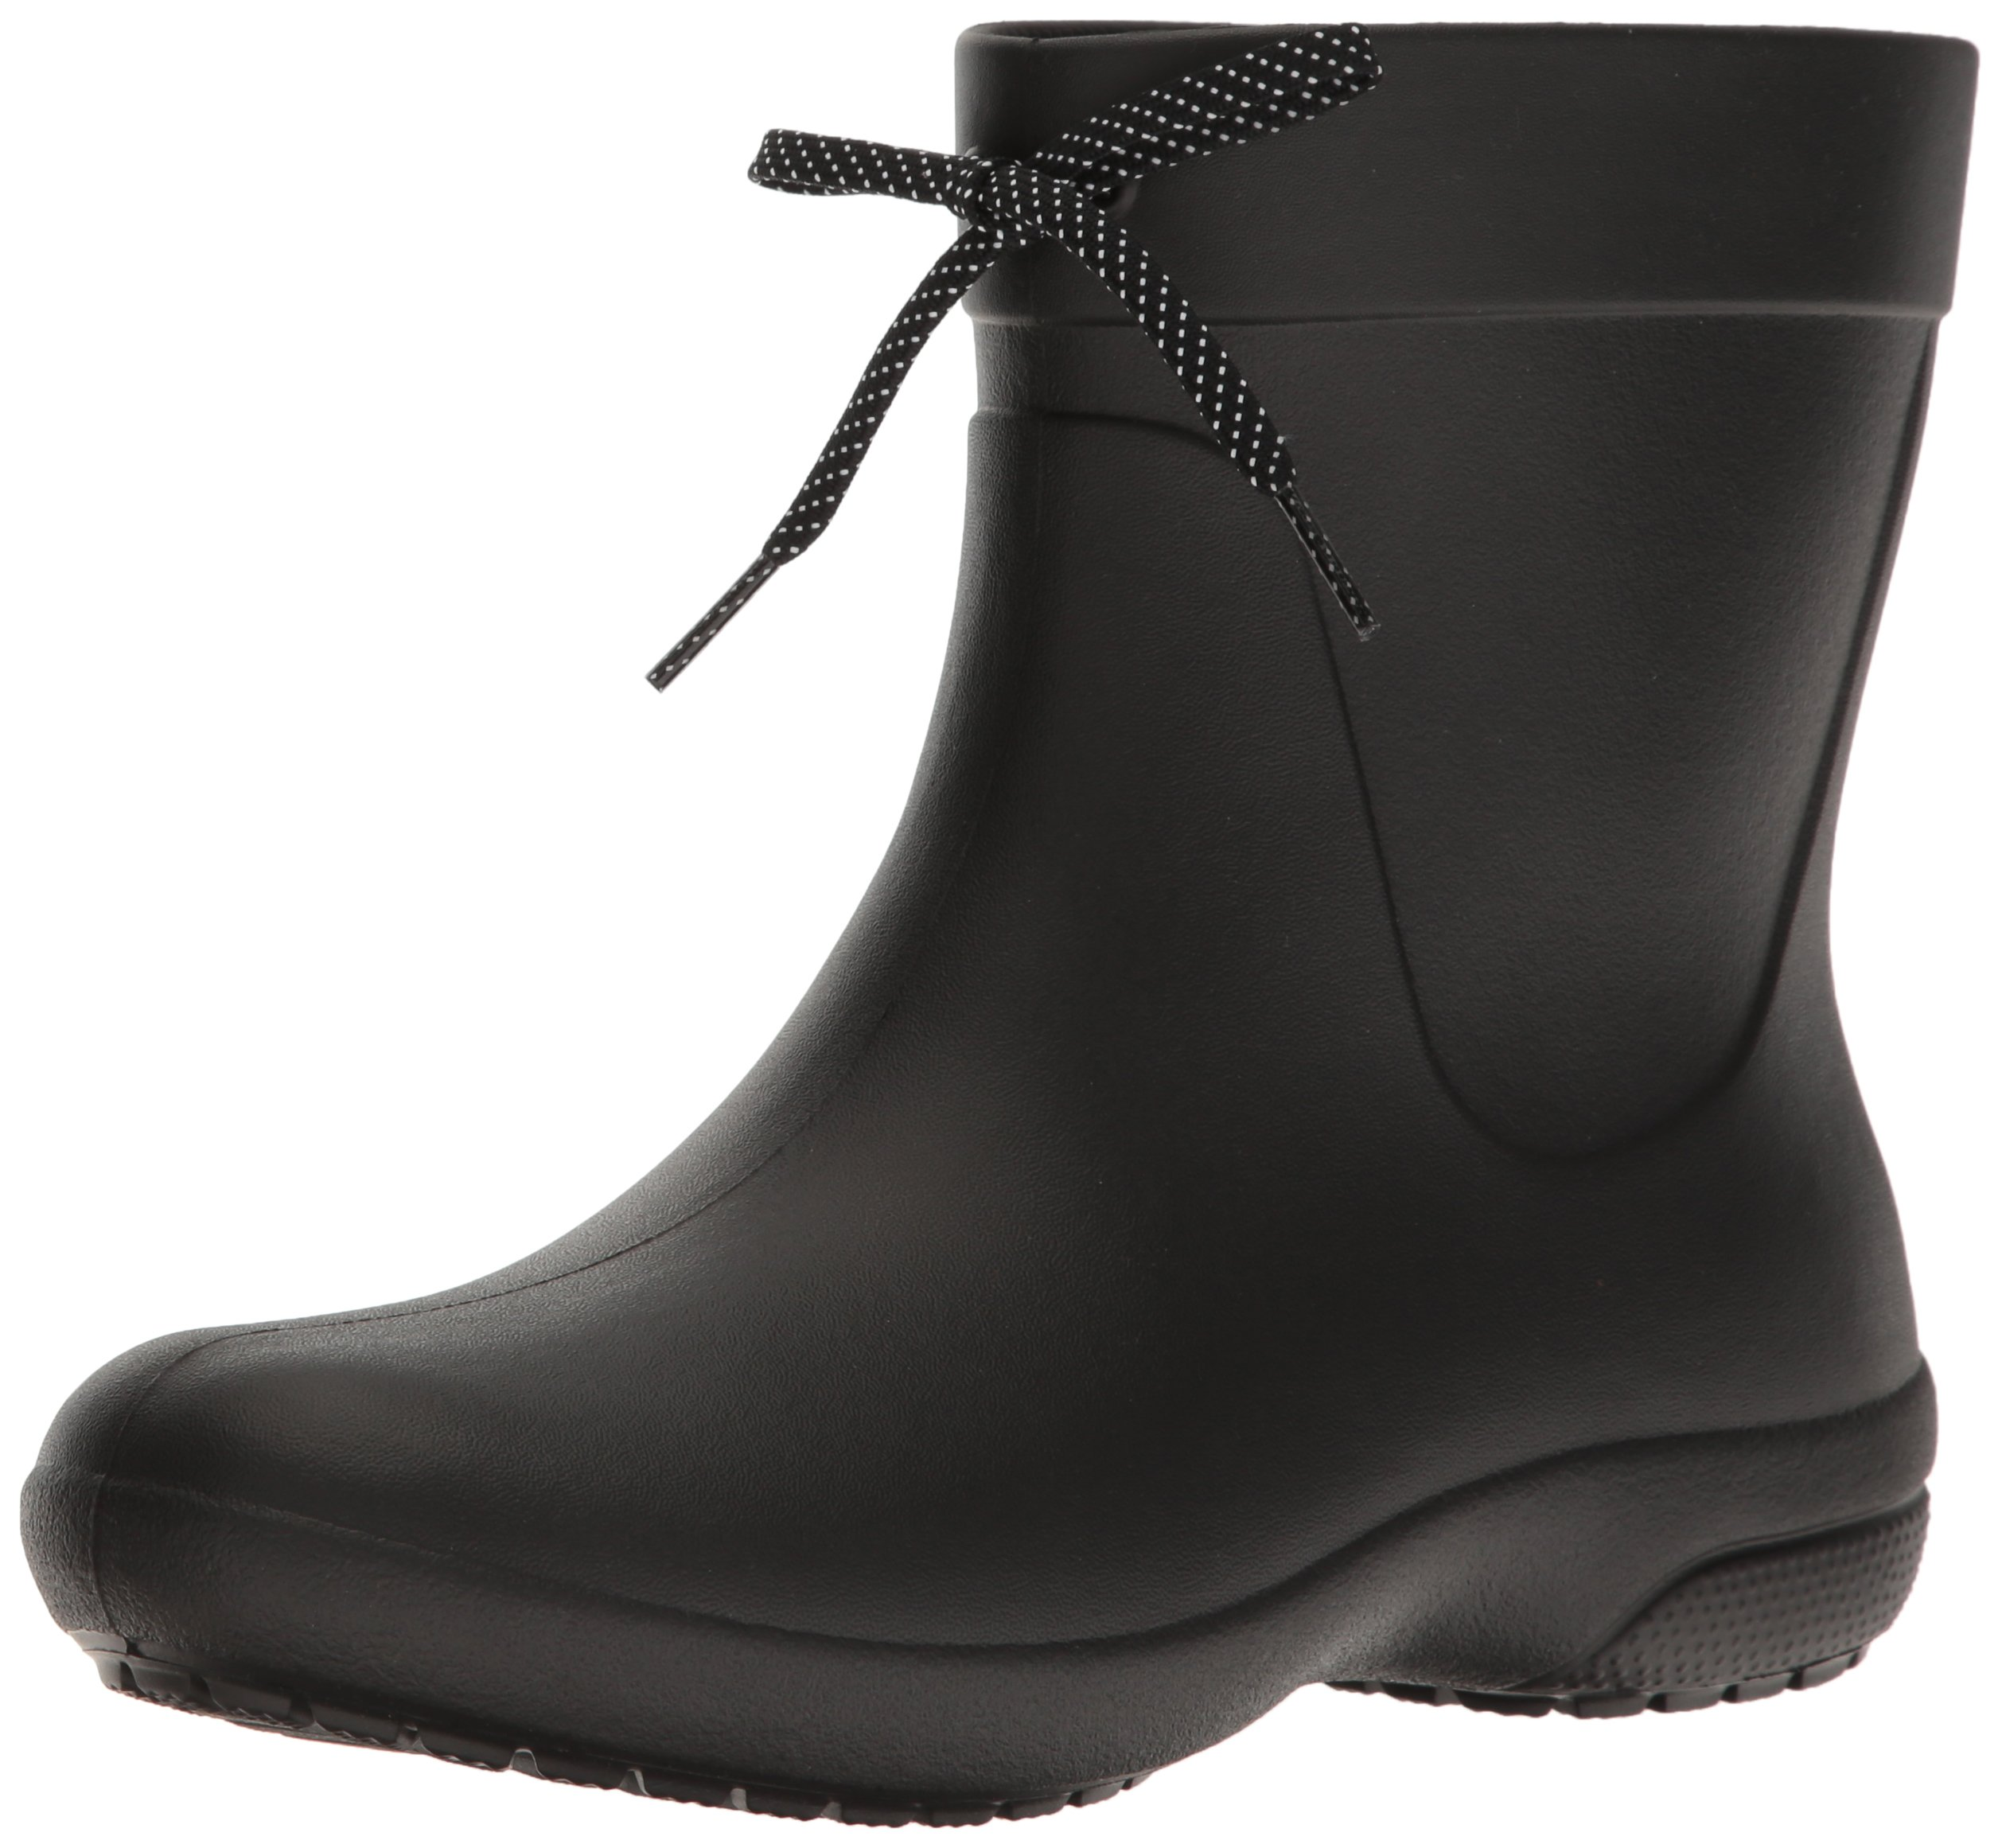 crocs Women's Freesail Shorty Rainboot, Black, 8 M US by Crocs